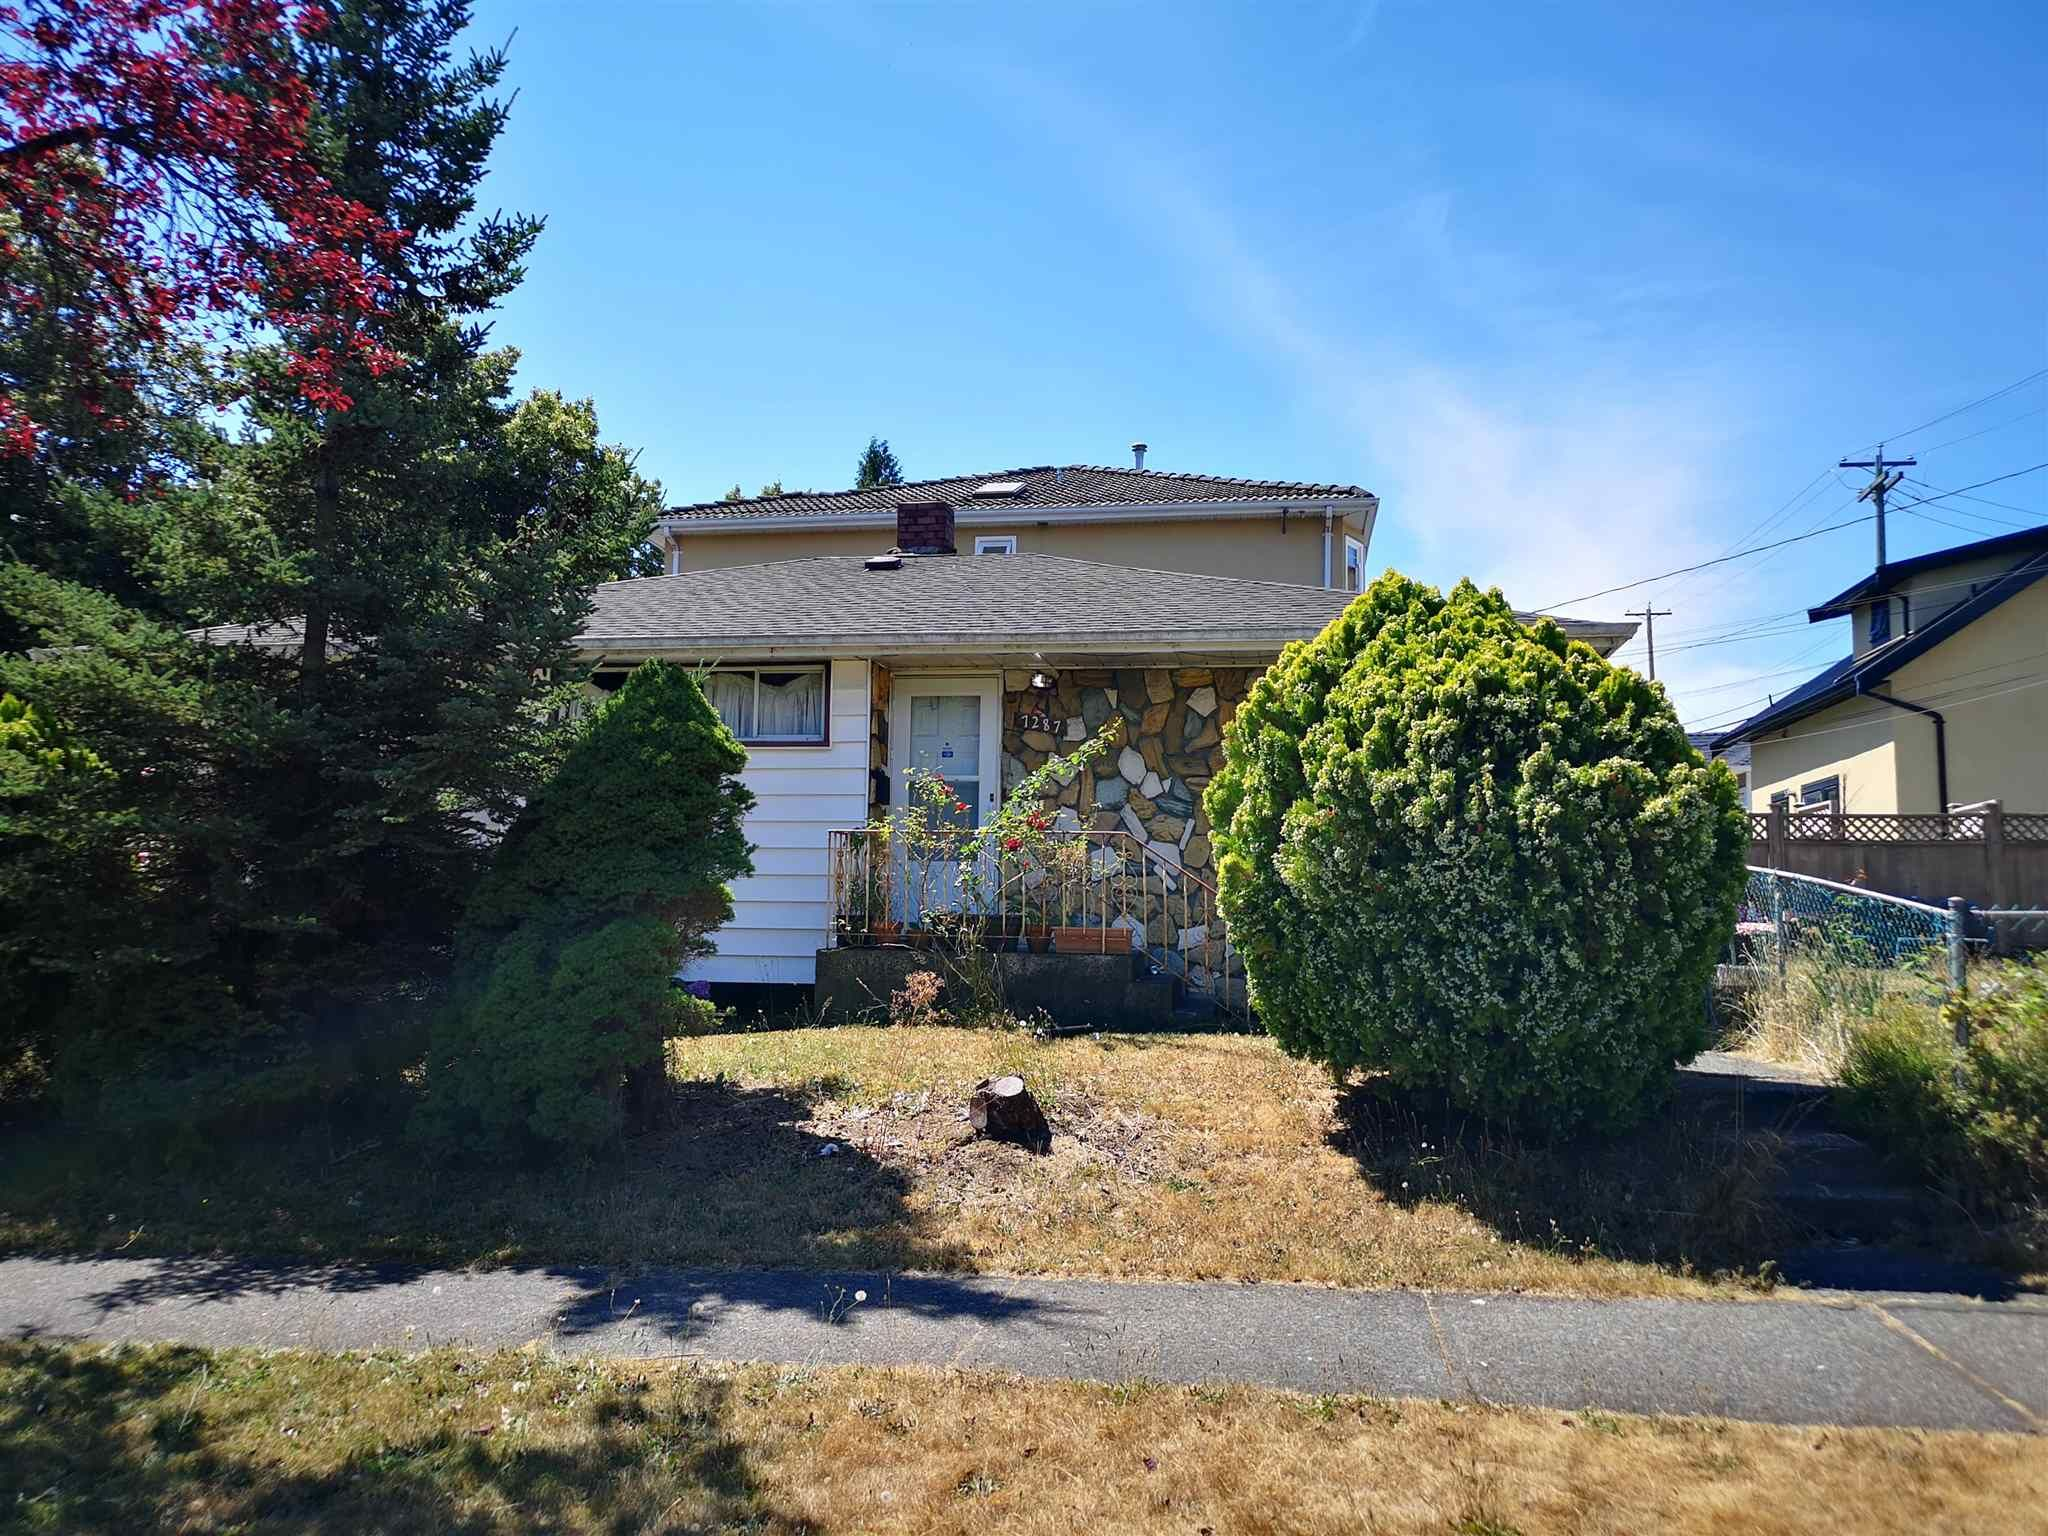 Main Photo: 7287 BERKELEY Street in Vancouver: Fraserview VE House for sale (Vancouver East)  : MLS®# R2607555